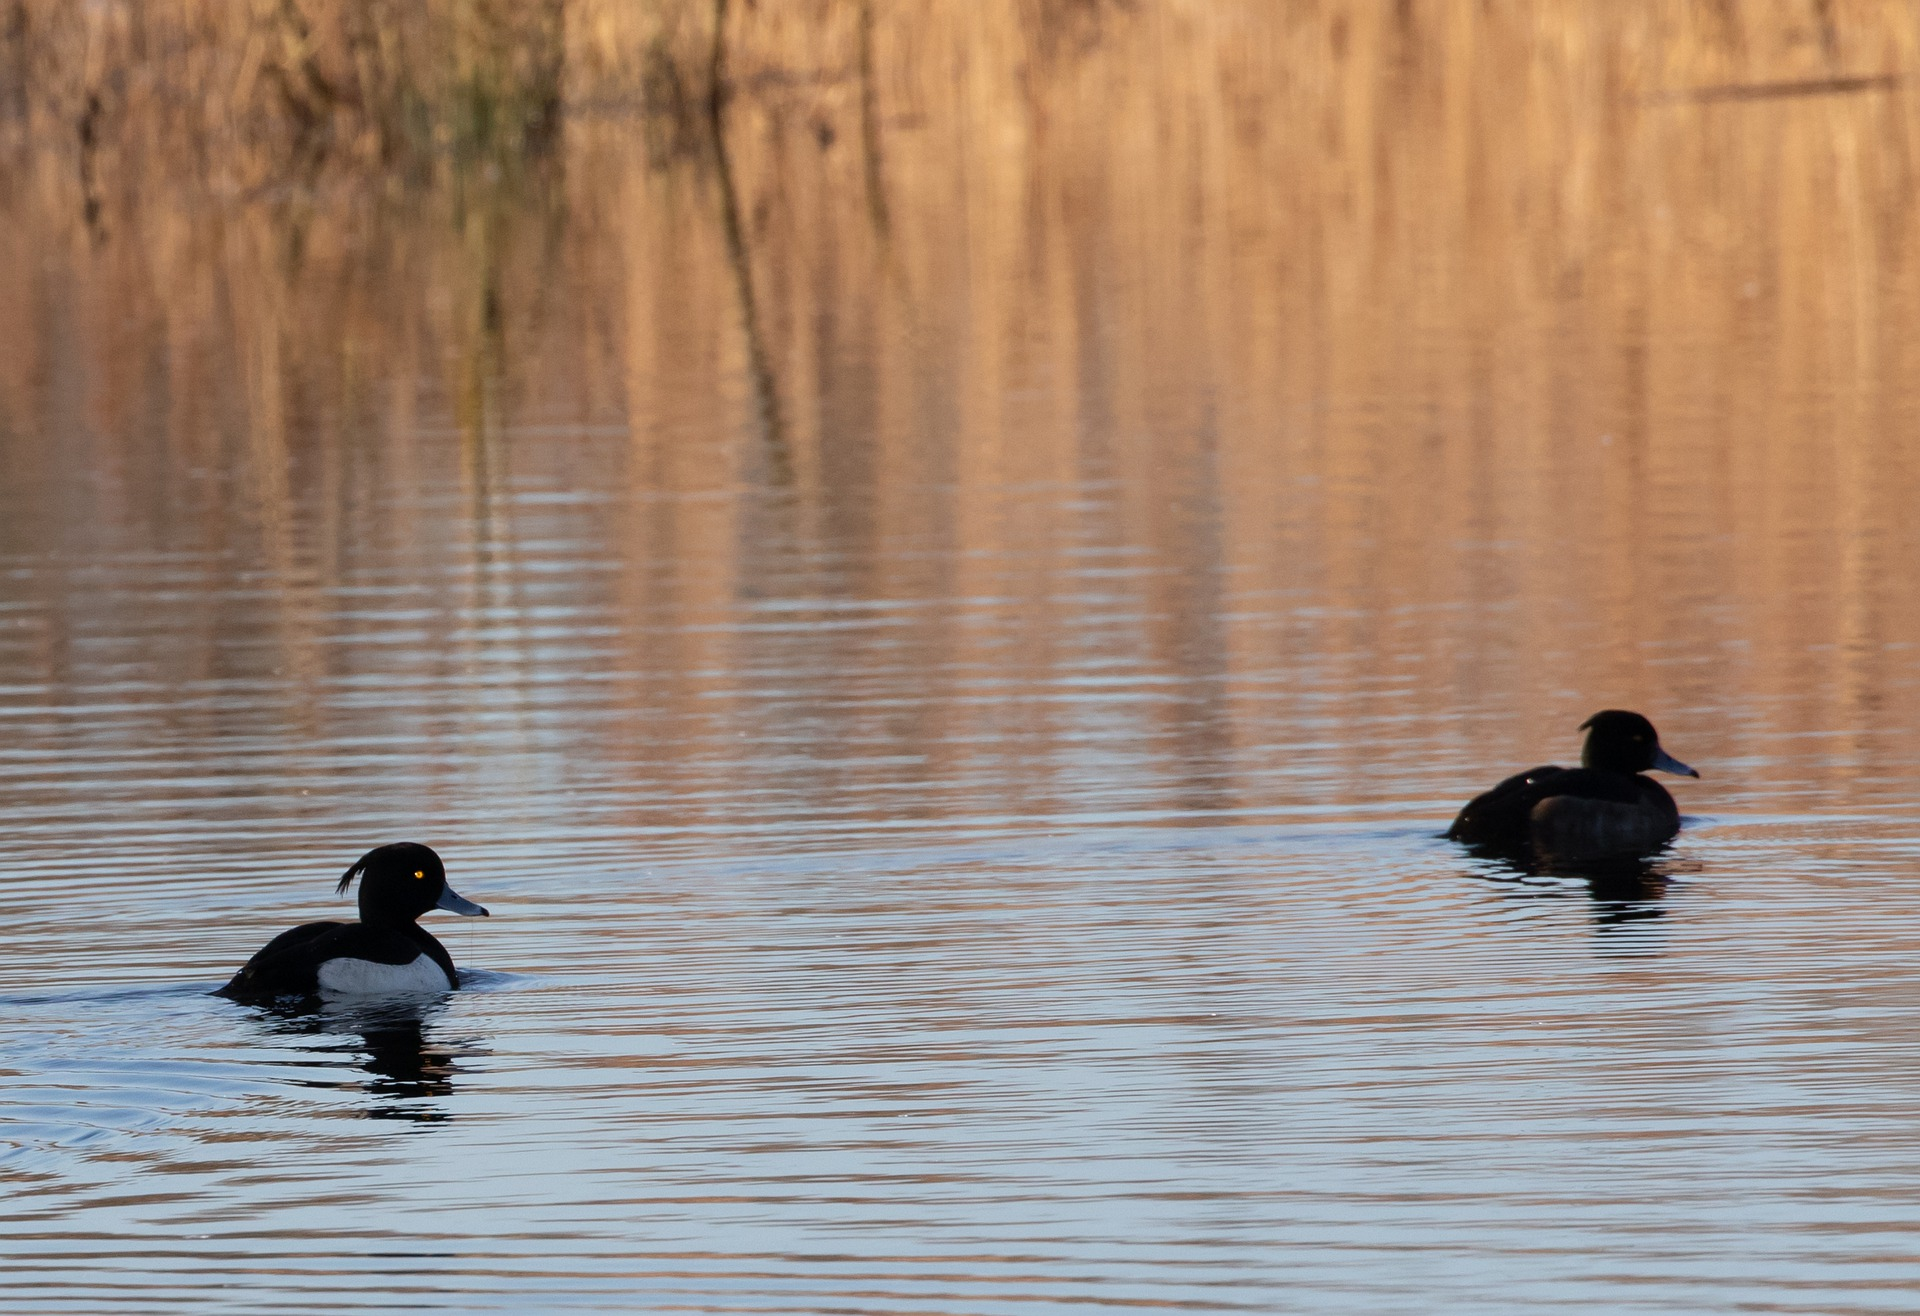 tufted-duck-bird-photography-tours-hikesntrails.com